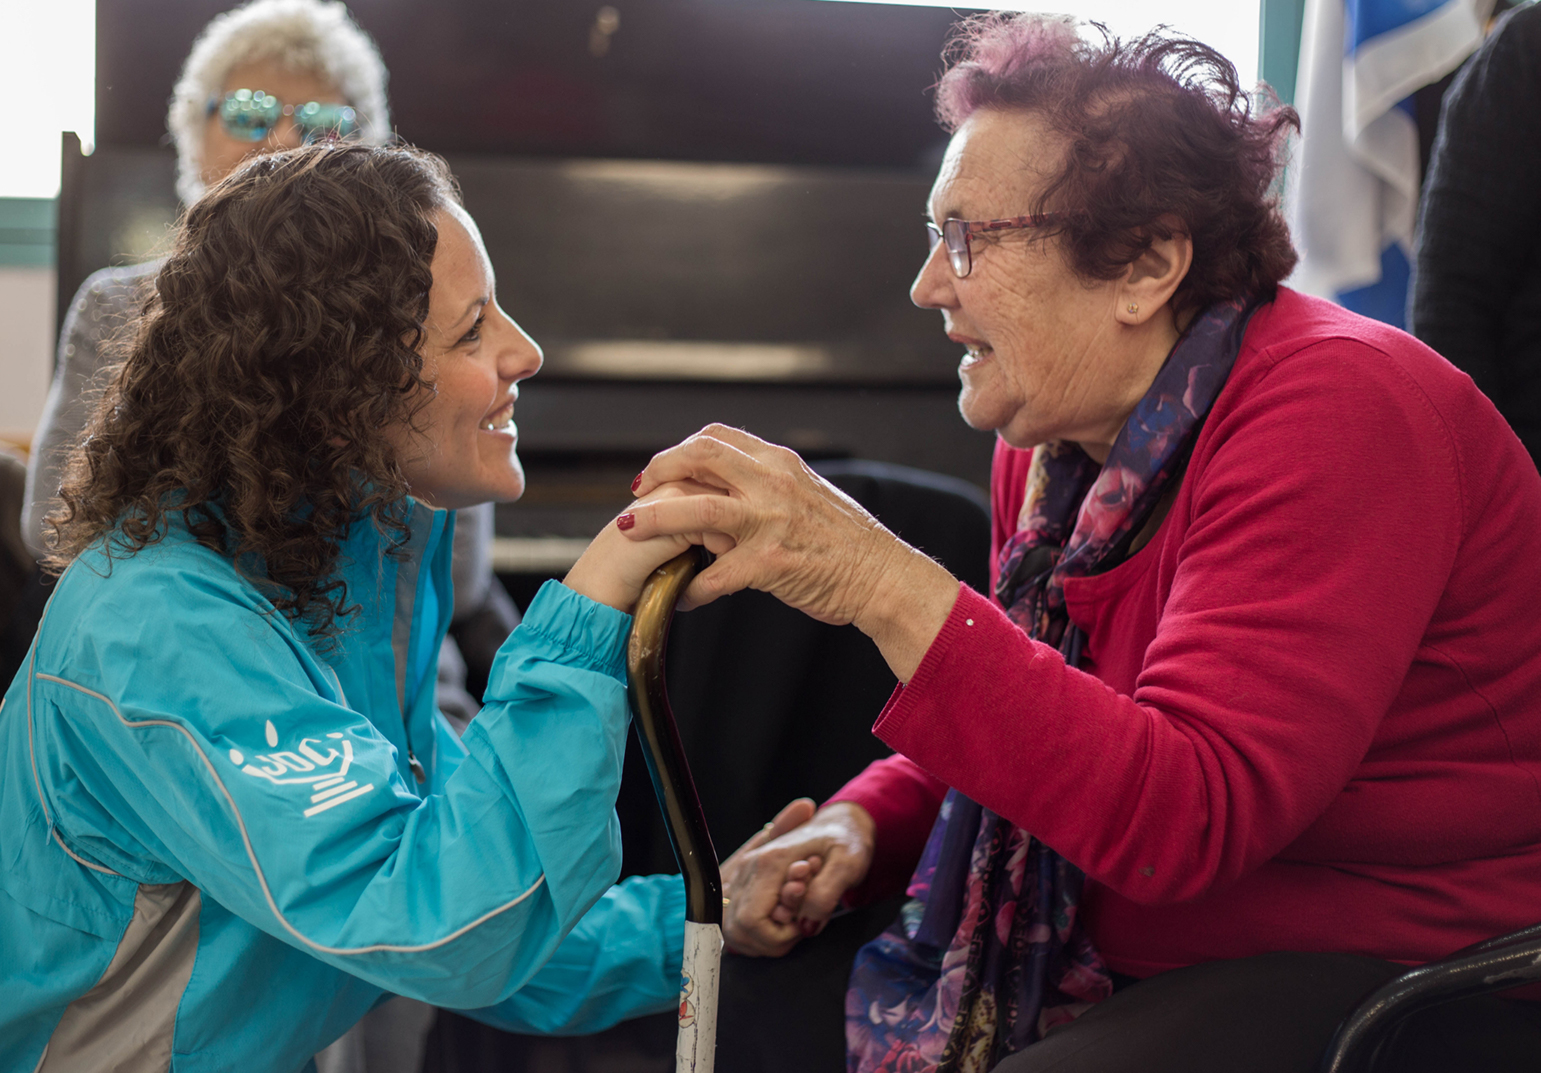 A JDC volunteer speaks to an elderly Holocaust survivor at a Cafe Europa event in Israel.